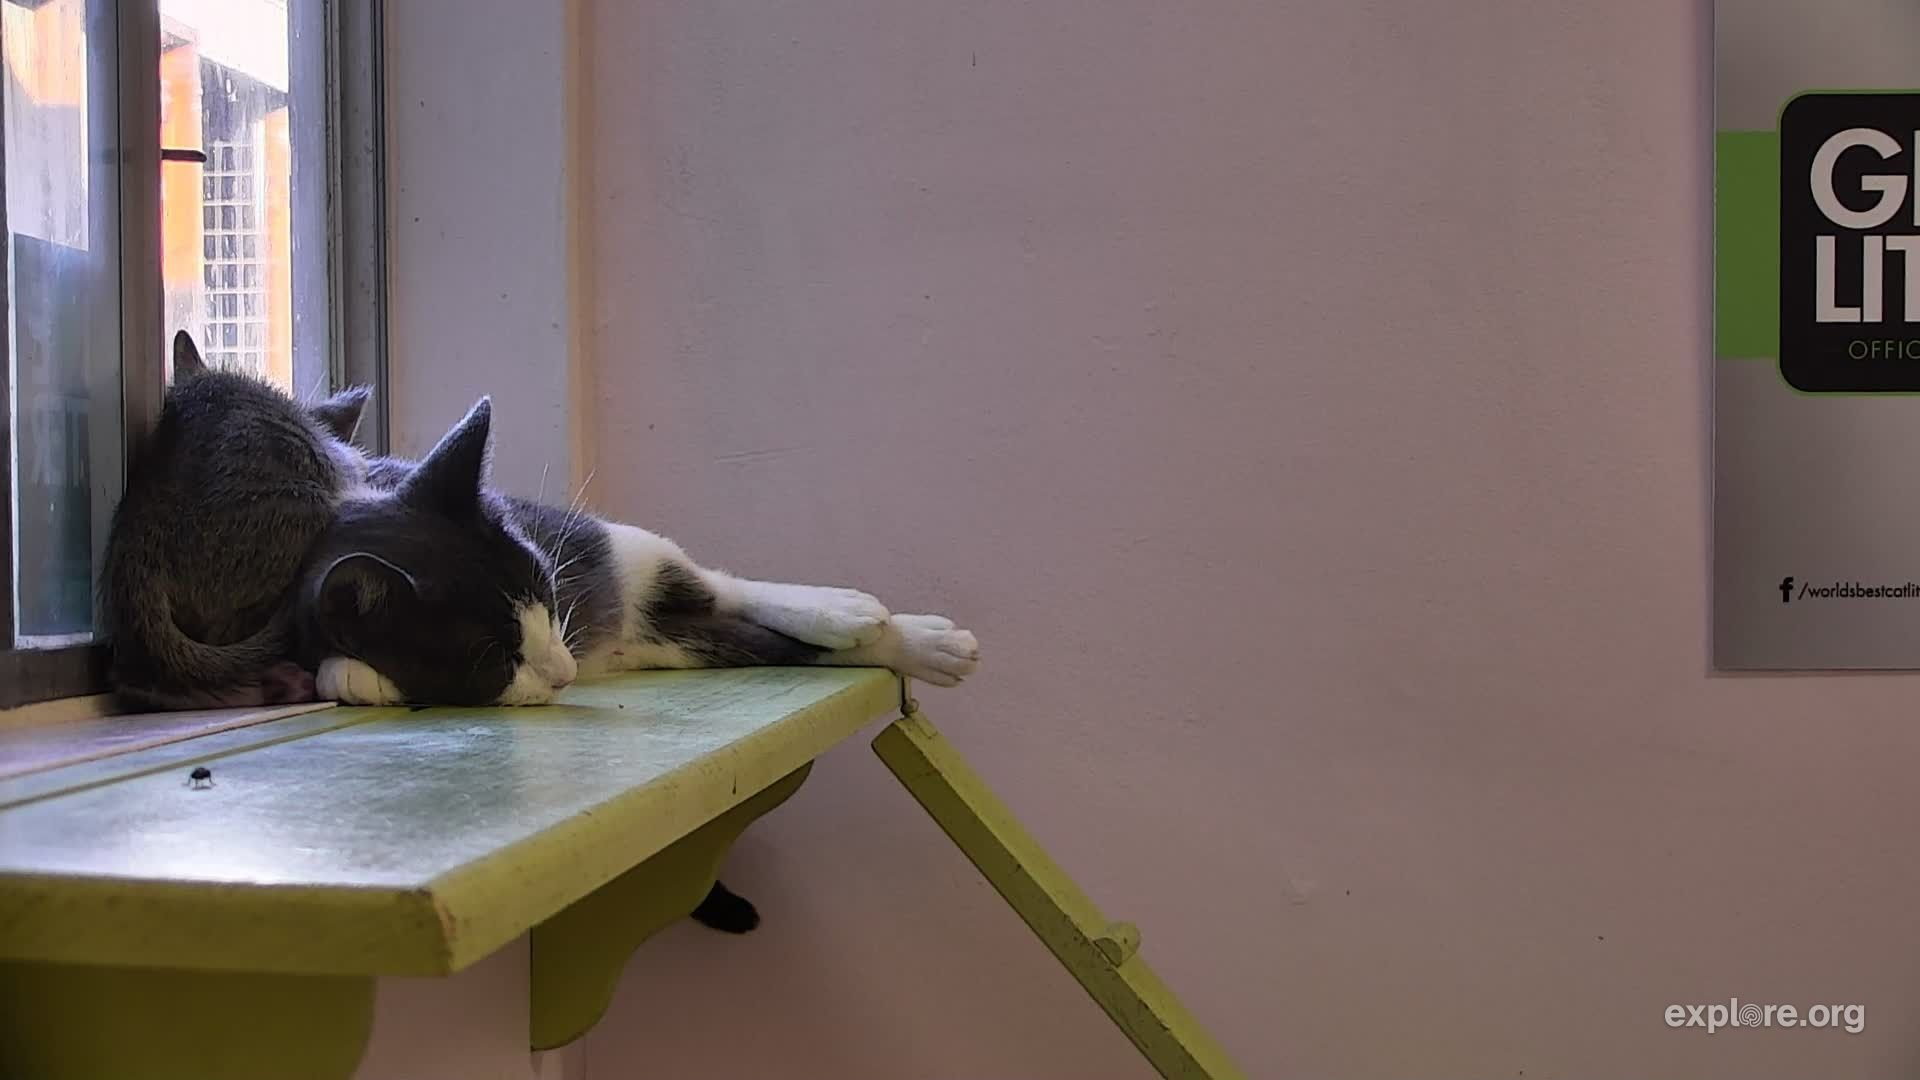 I M Watching The Kittenrescue Cam On Explore Org Streaming Live From Los Angeles Ca Snapshots Cats